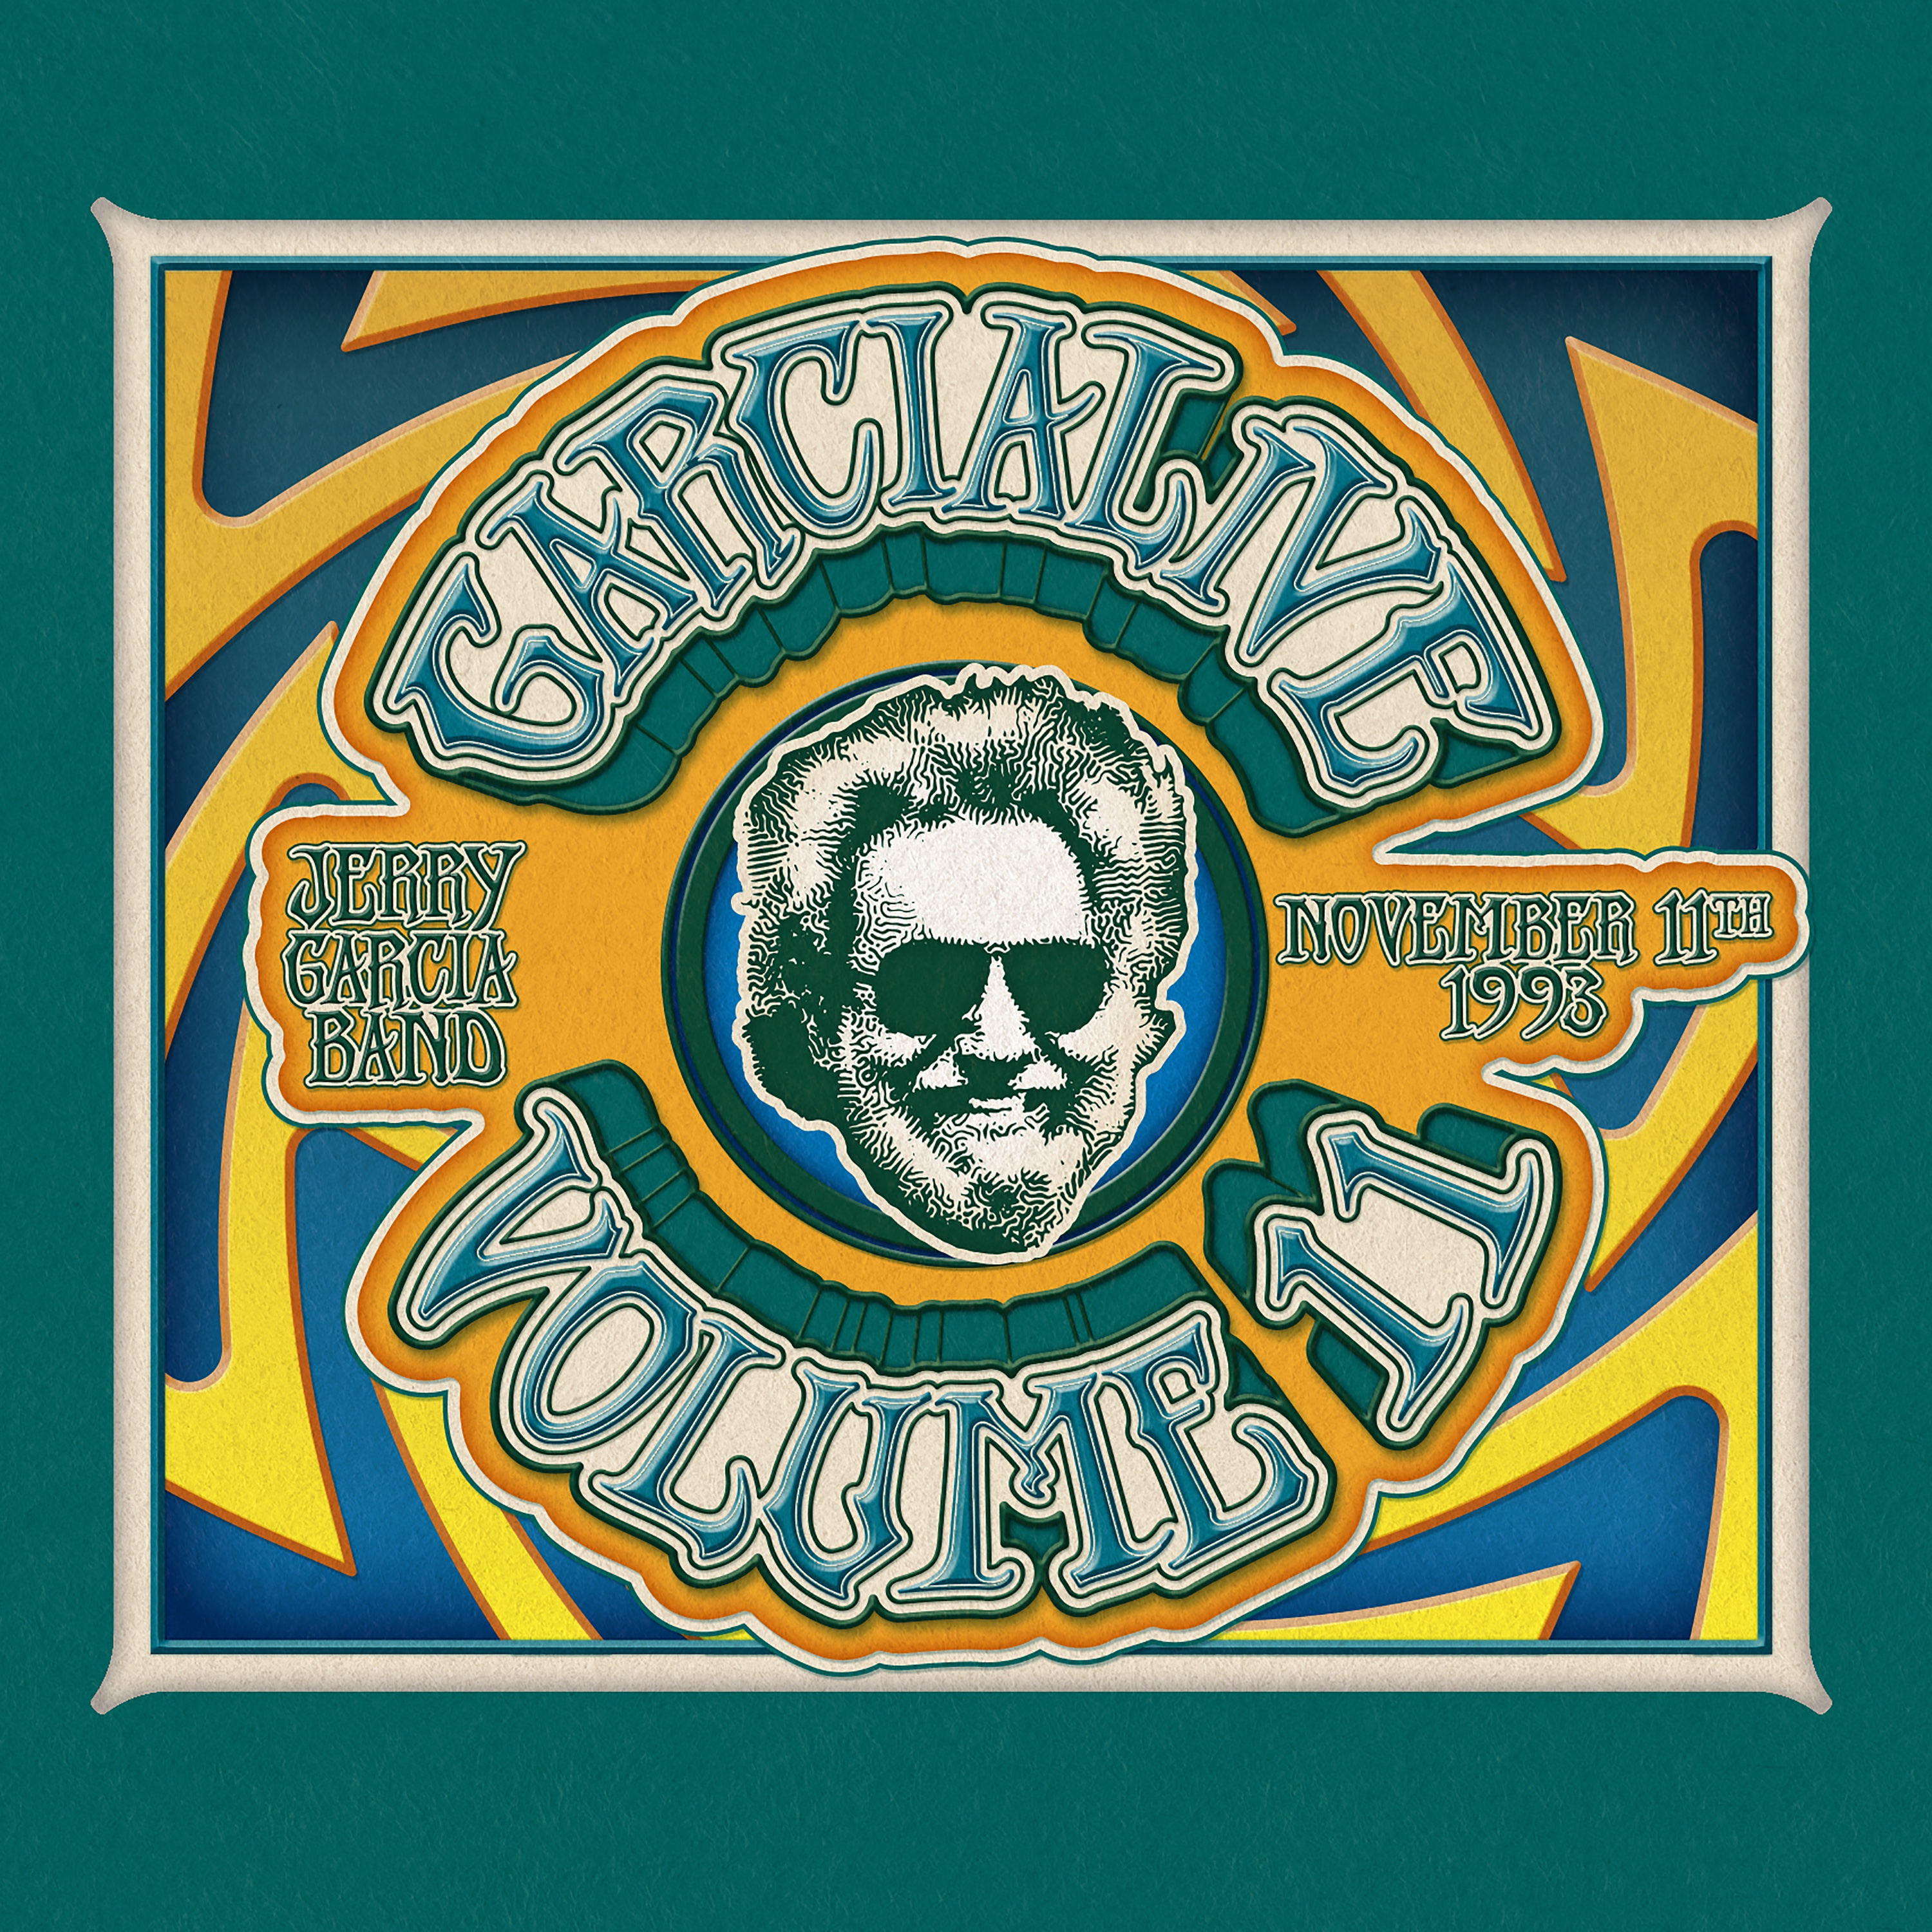 Jerry Garcia Band | GarciaLive Volume 11 | Review